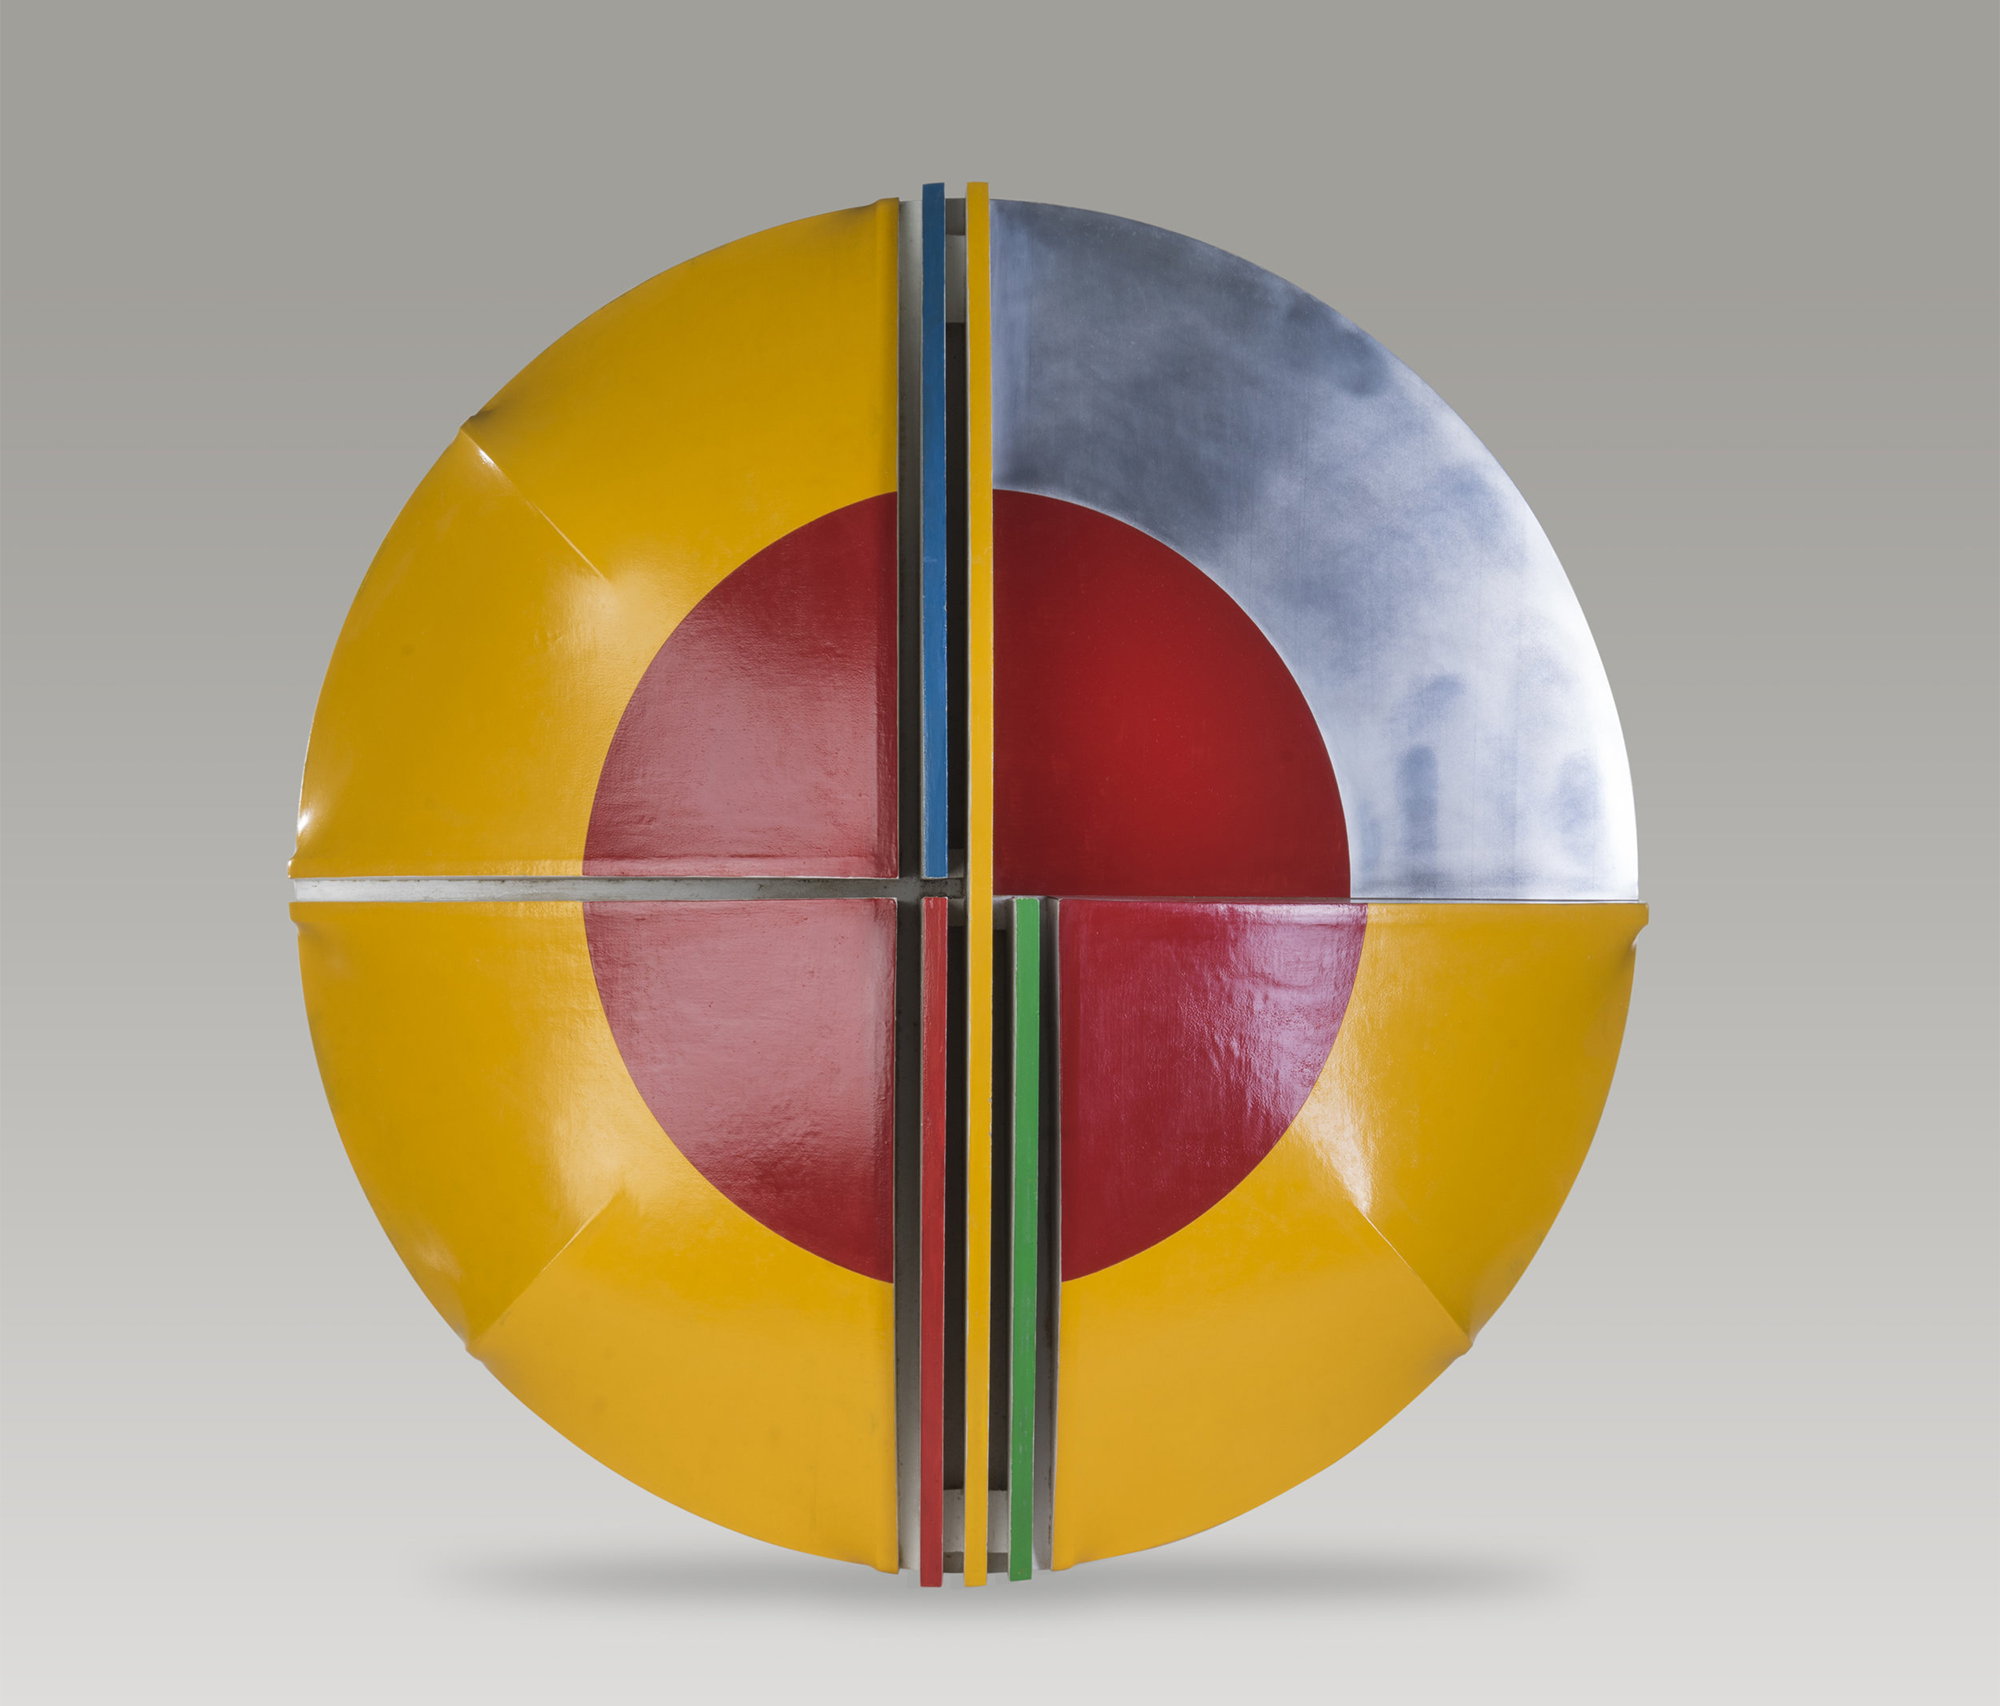 Yellow Shield, c. 1960s  , acrylic on stretched canvas, wood and aluminum, 47 x 8 1/4 inches